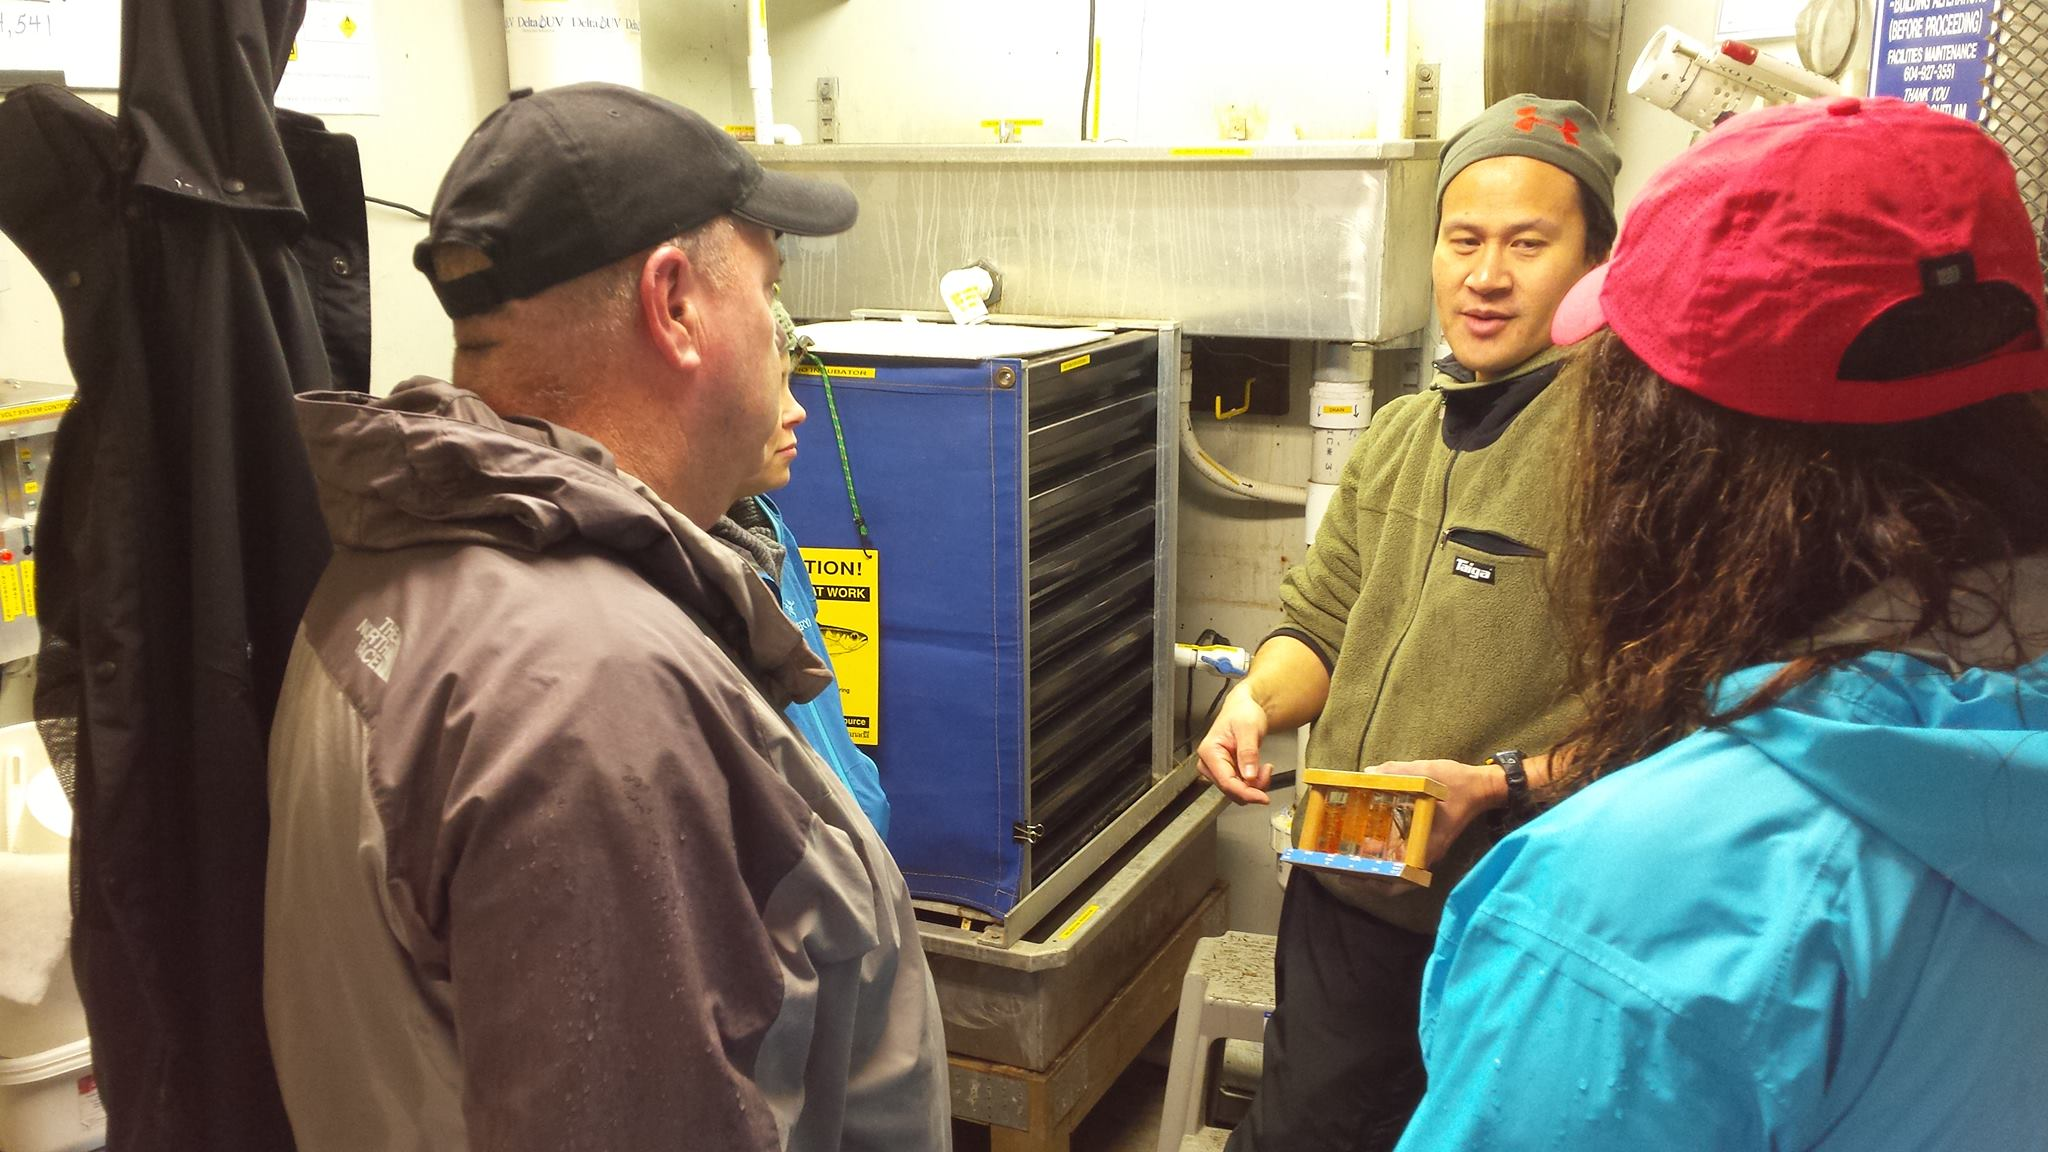 Hatchery manager Rodney Lee provides an orientation to new members on Saturday at our monthly open house